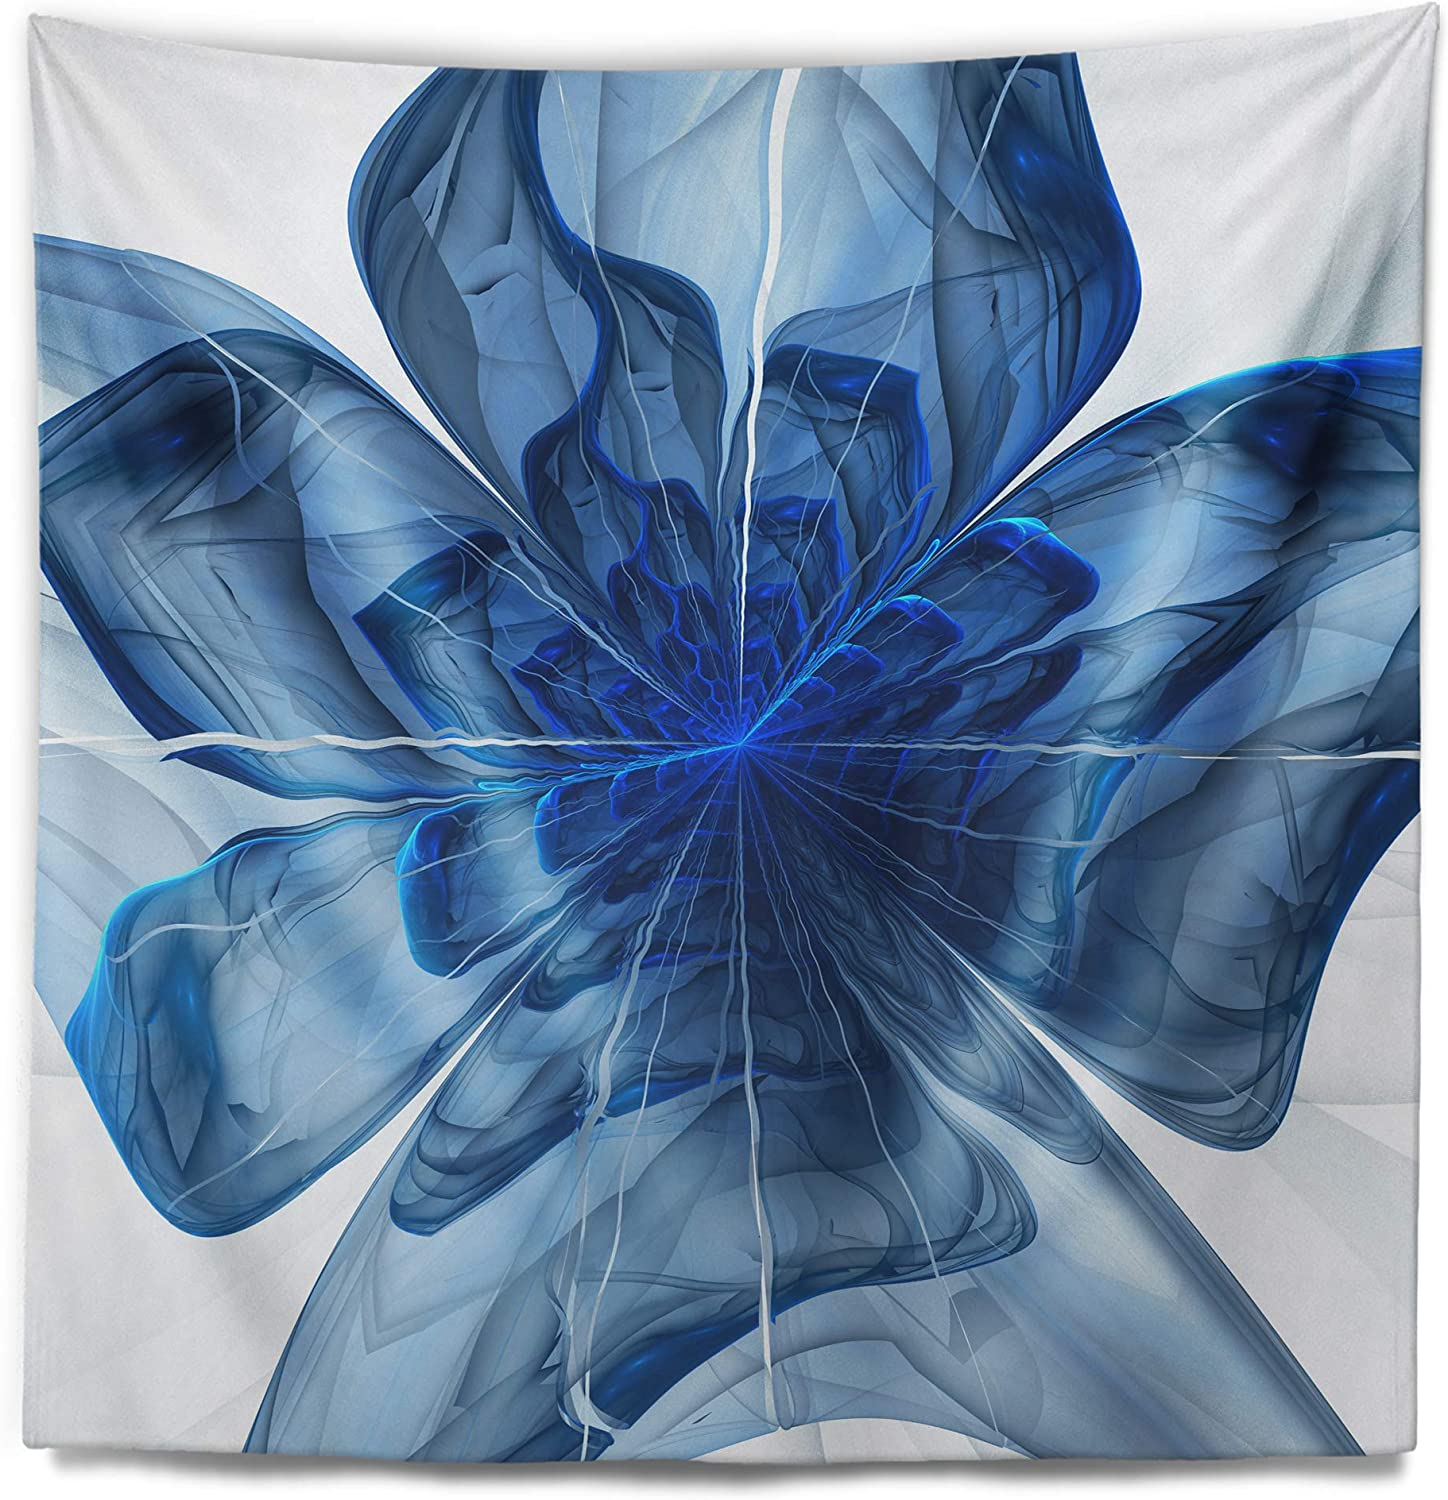 Designart Blue Fractal Flower With Large Petals Floral Tapestry Blanket Décor Wall Art For Home And Office Medium 32 In X 39 In Arts Crafts Sewing